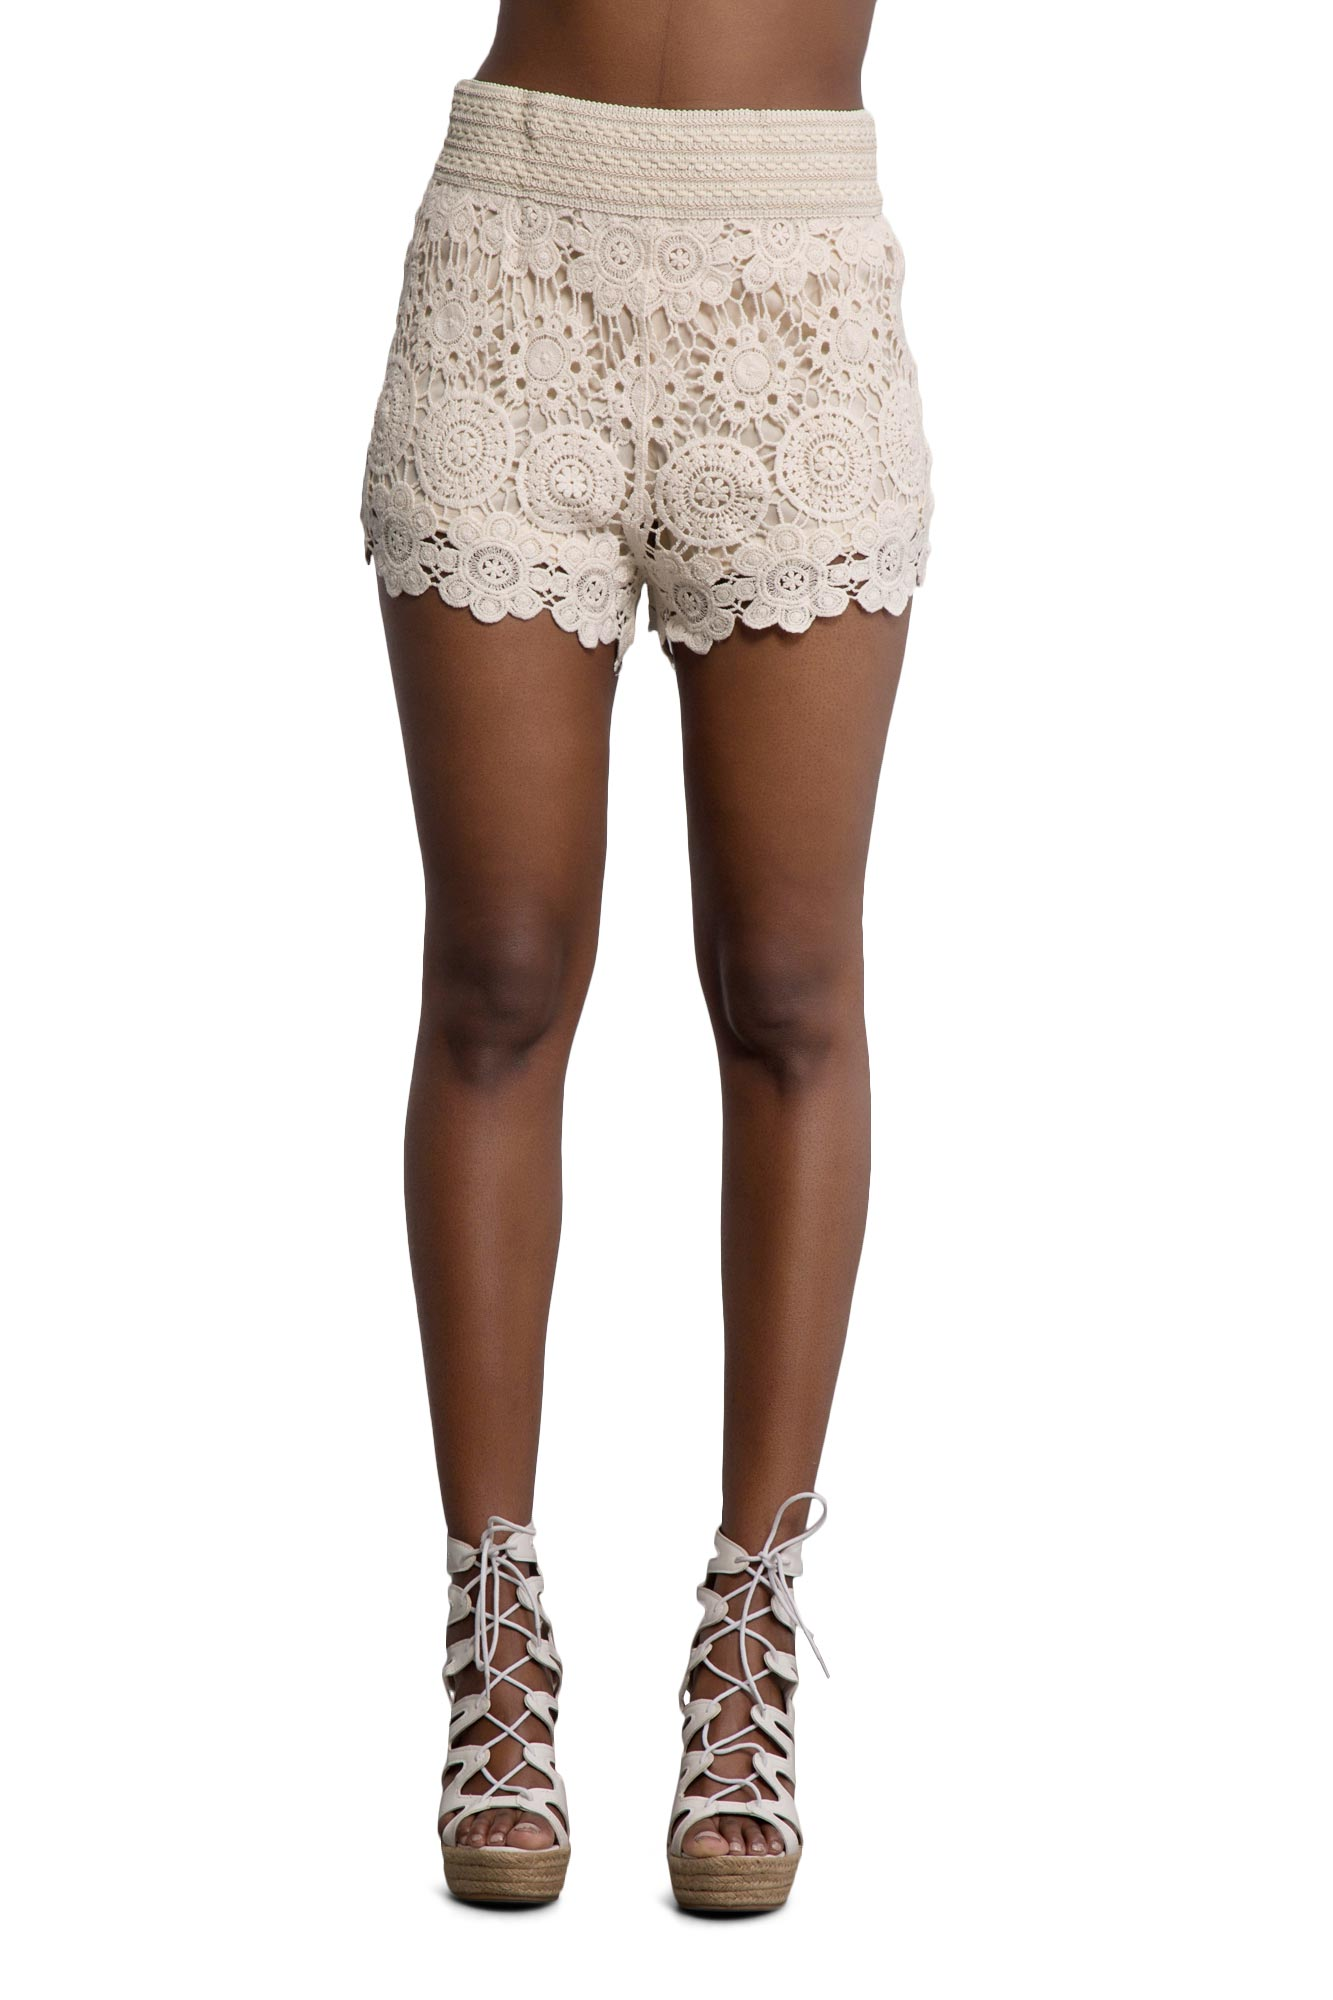 Feb 25, · Hello Everyone, in today's video I will be showing you guys how to crochet a high-waisted shorts. It looks a bit hard, but once you get the hang .